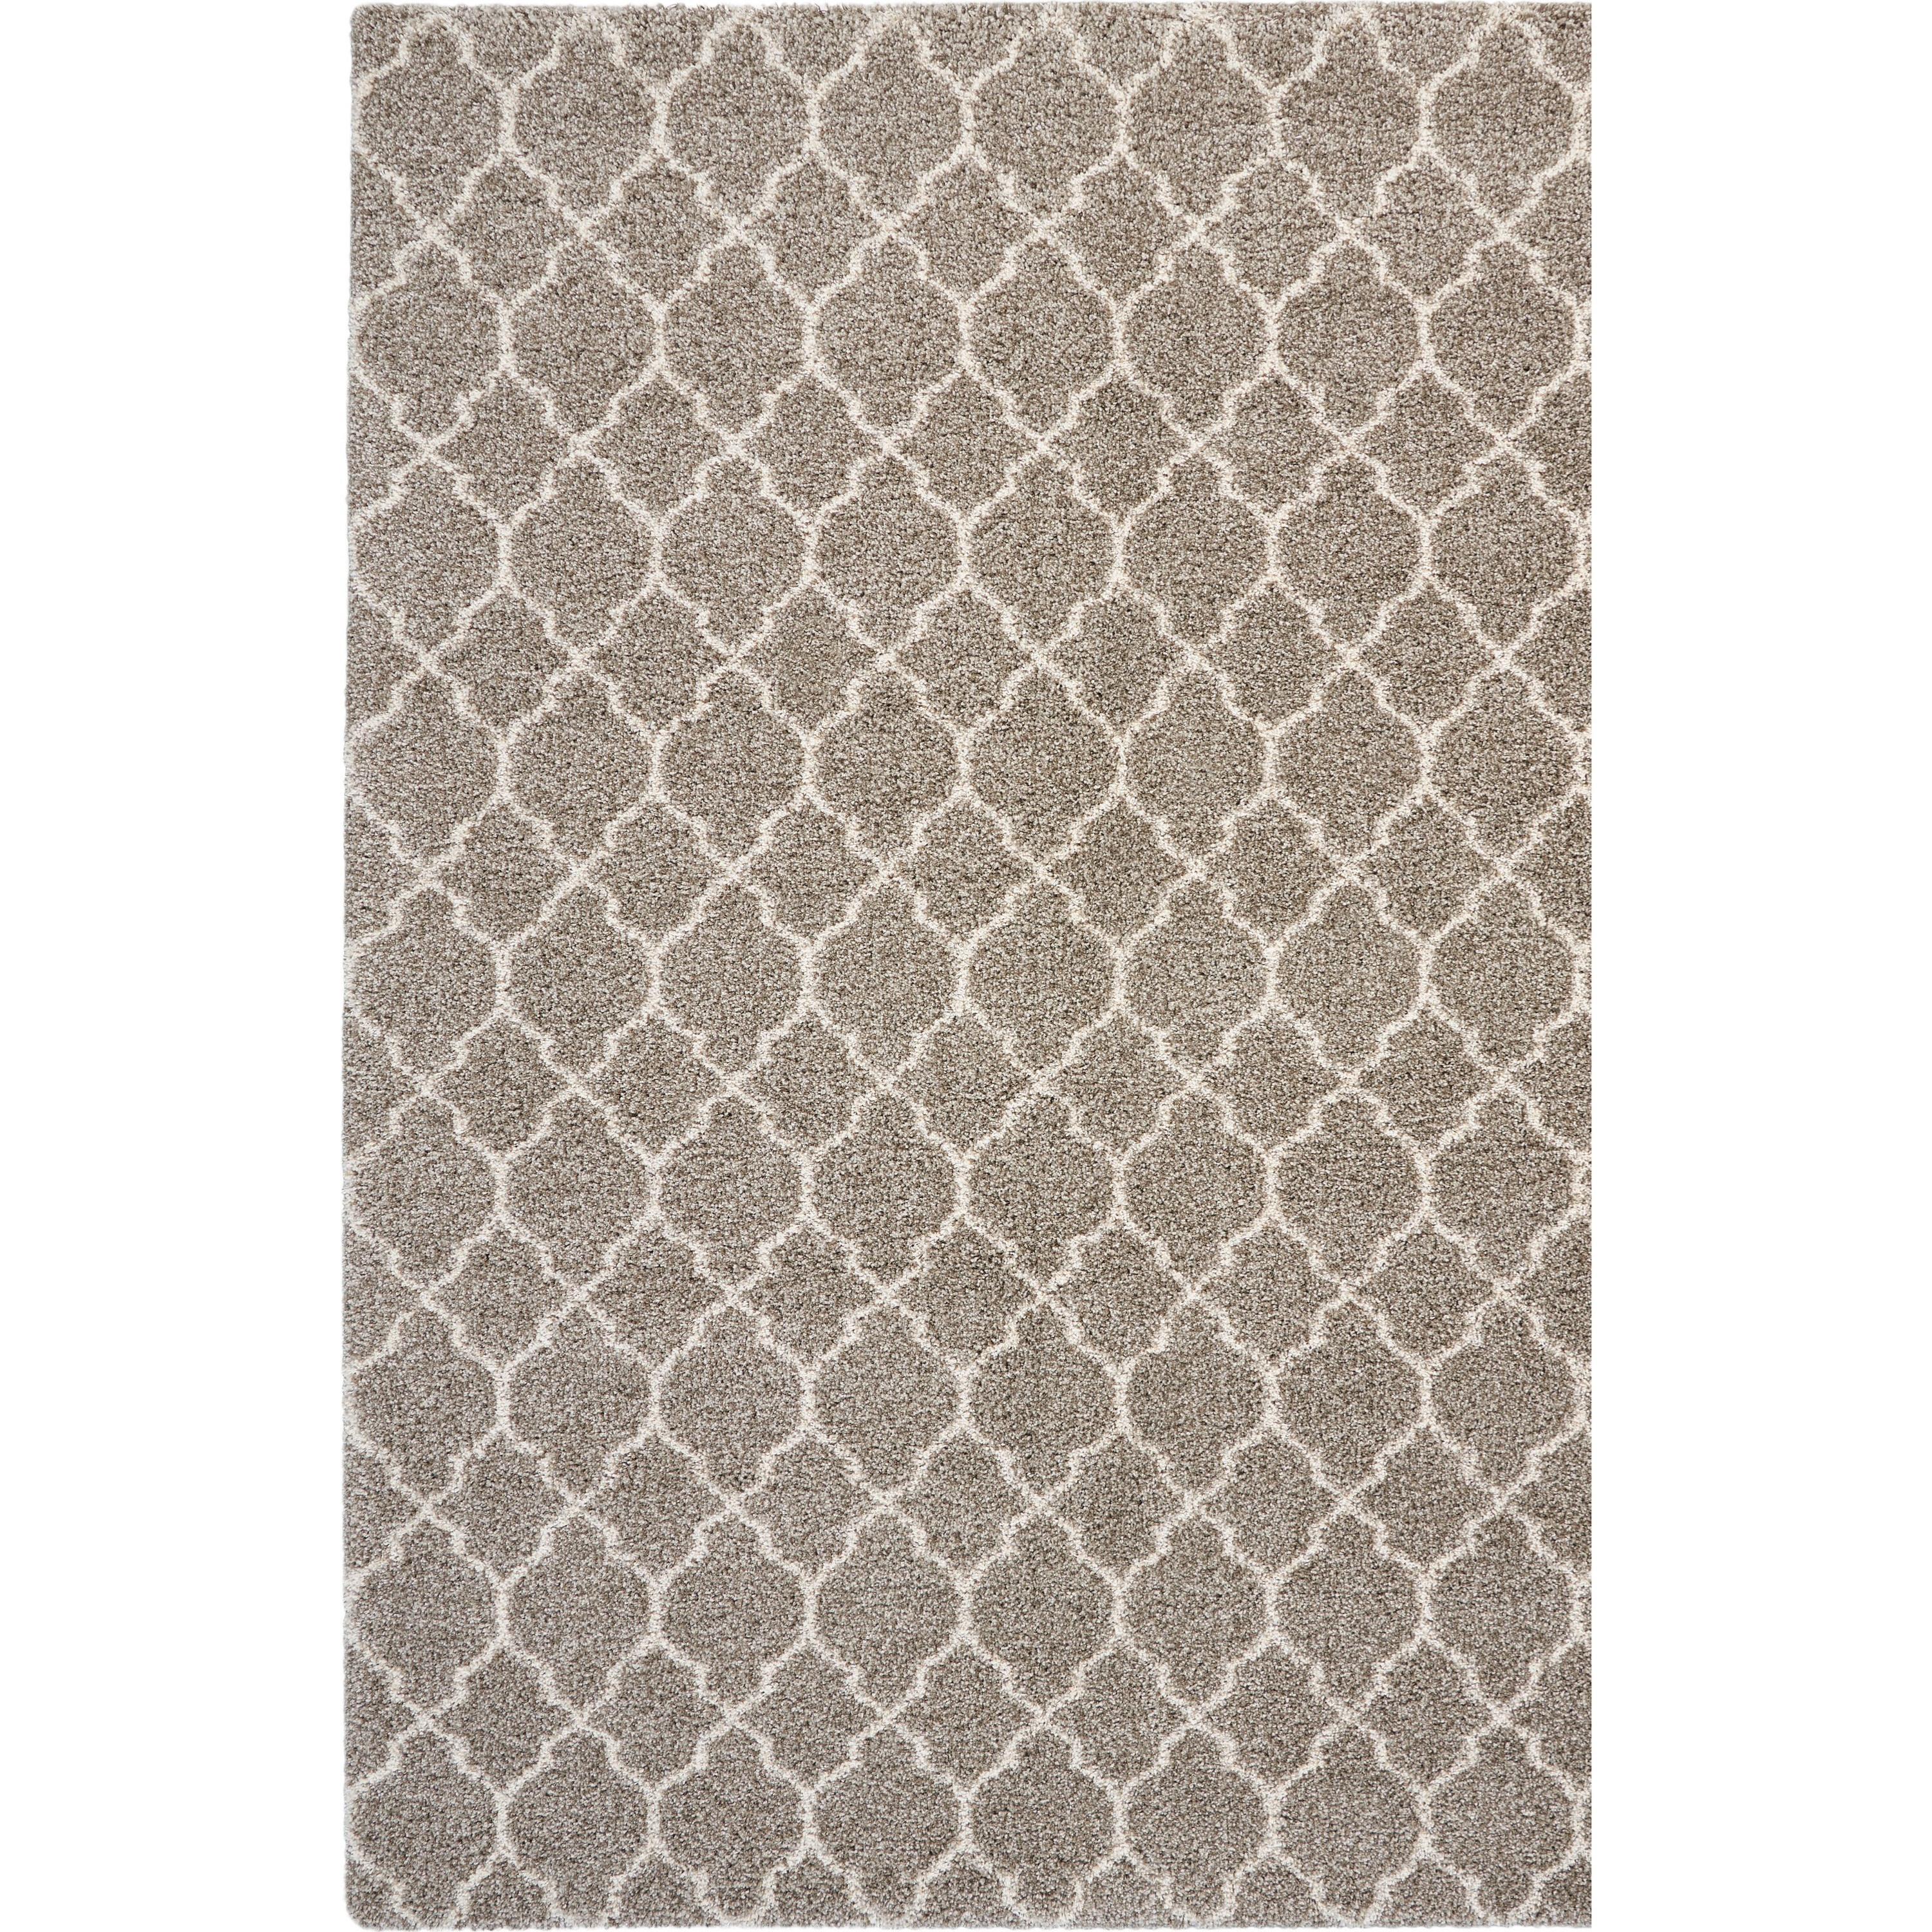 Amore Amore AMOR2 Beige 7'x10'   Rug by Nourison at Home Collections Furniture